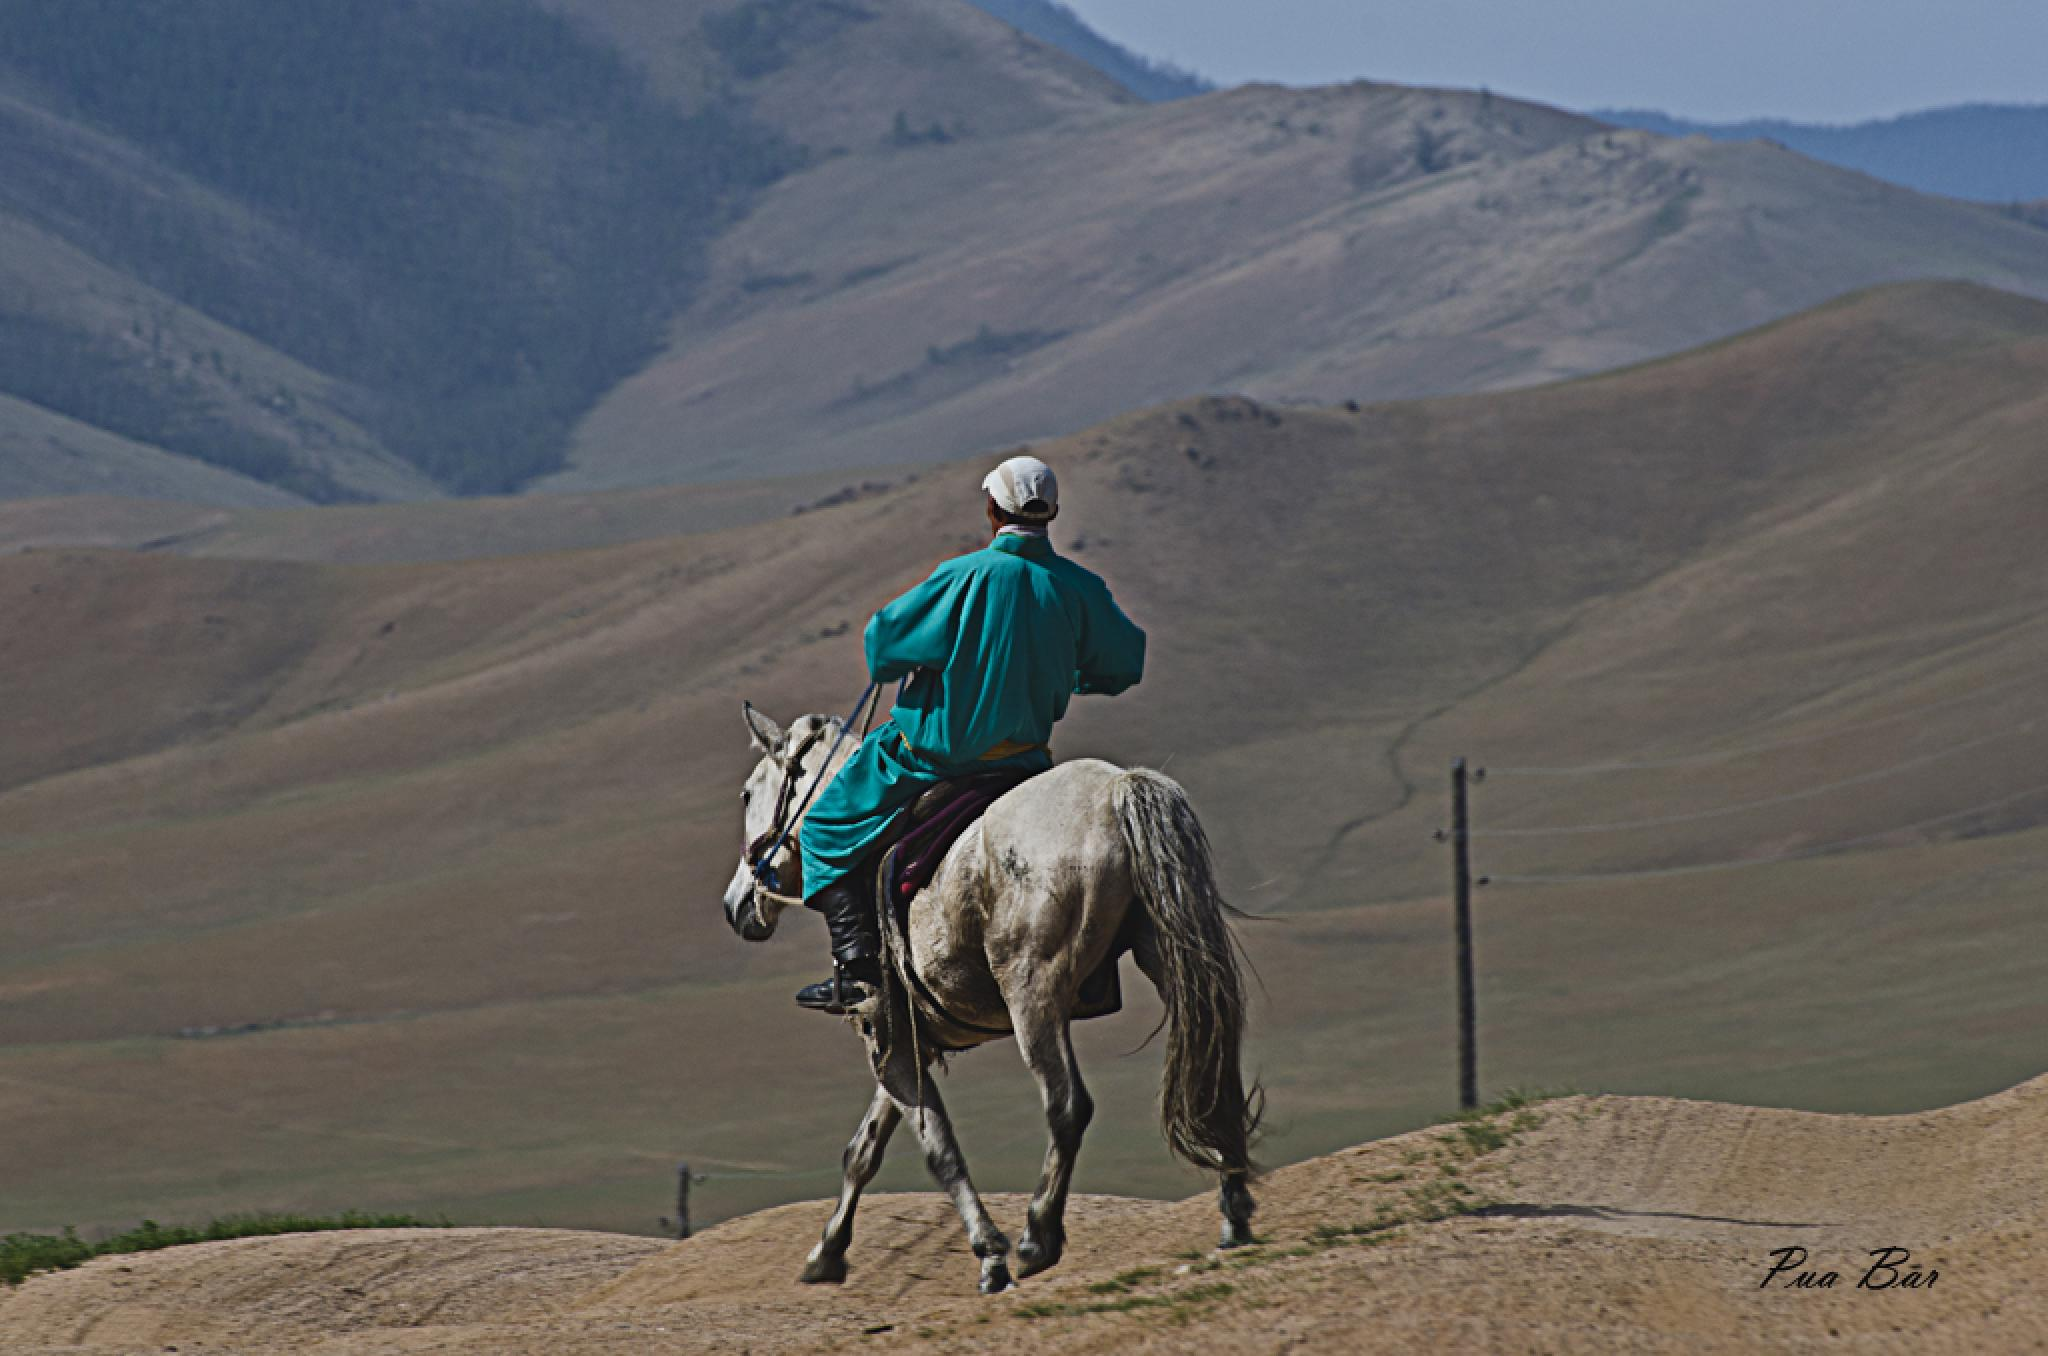 Riding at the Mongolyan stepps by puabar